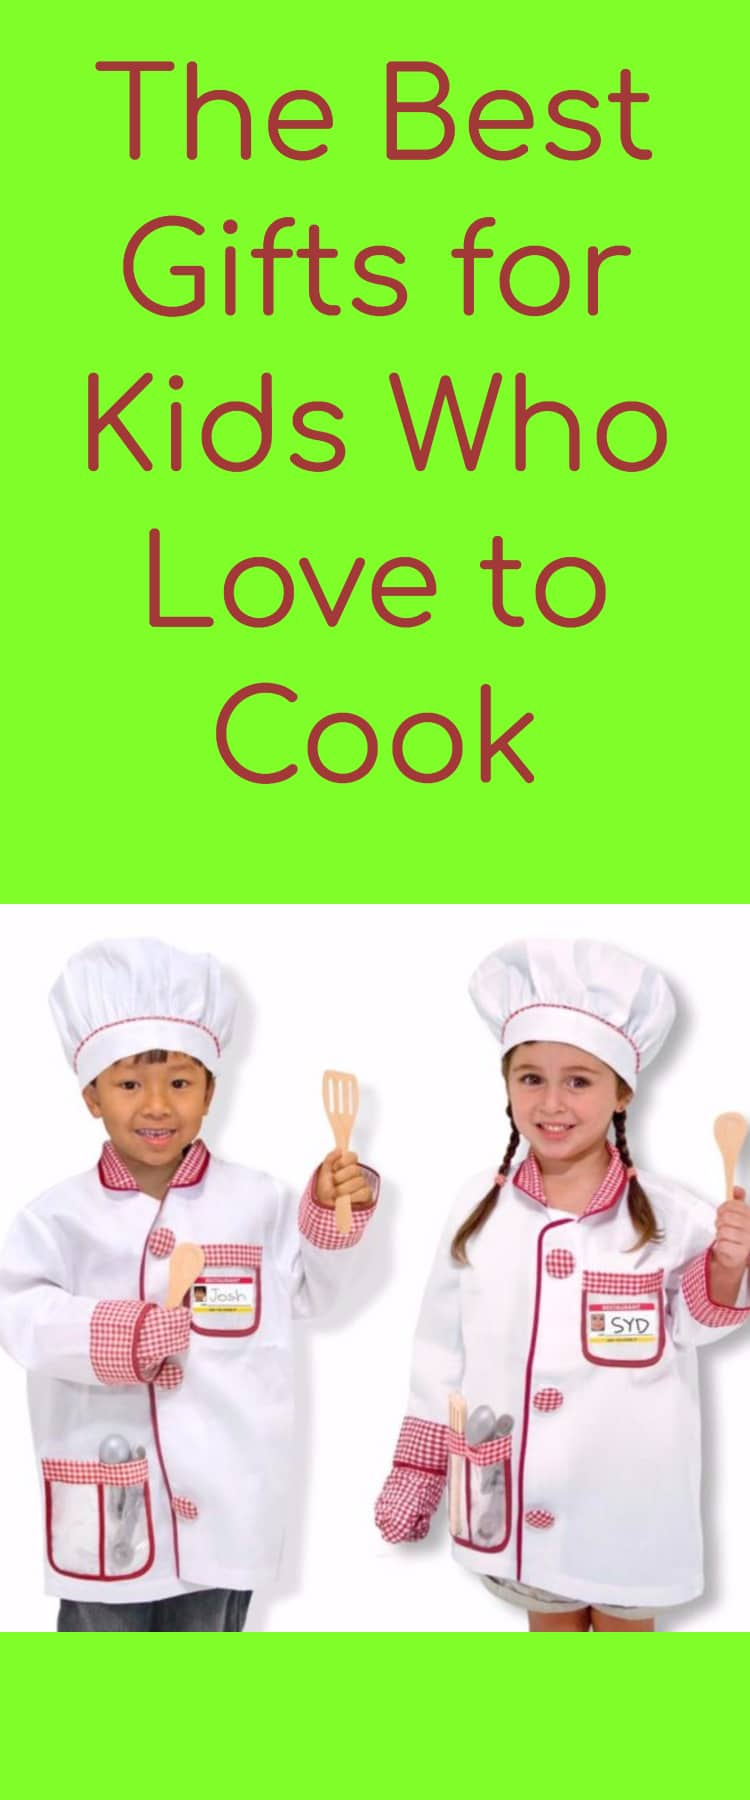 Cooking Gifts / Gift Ideas for Kids / Cooking Ideas / Kid Cooking #Christmas #Christmasgifts via @clarkscondensed